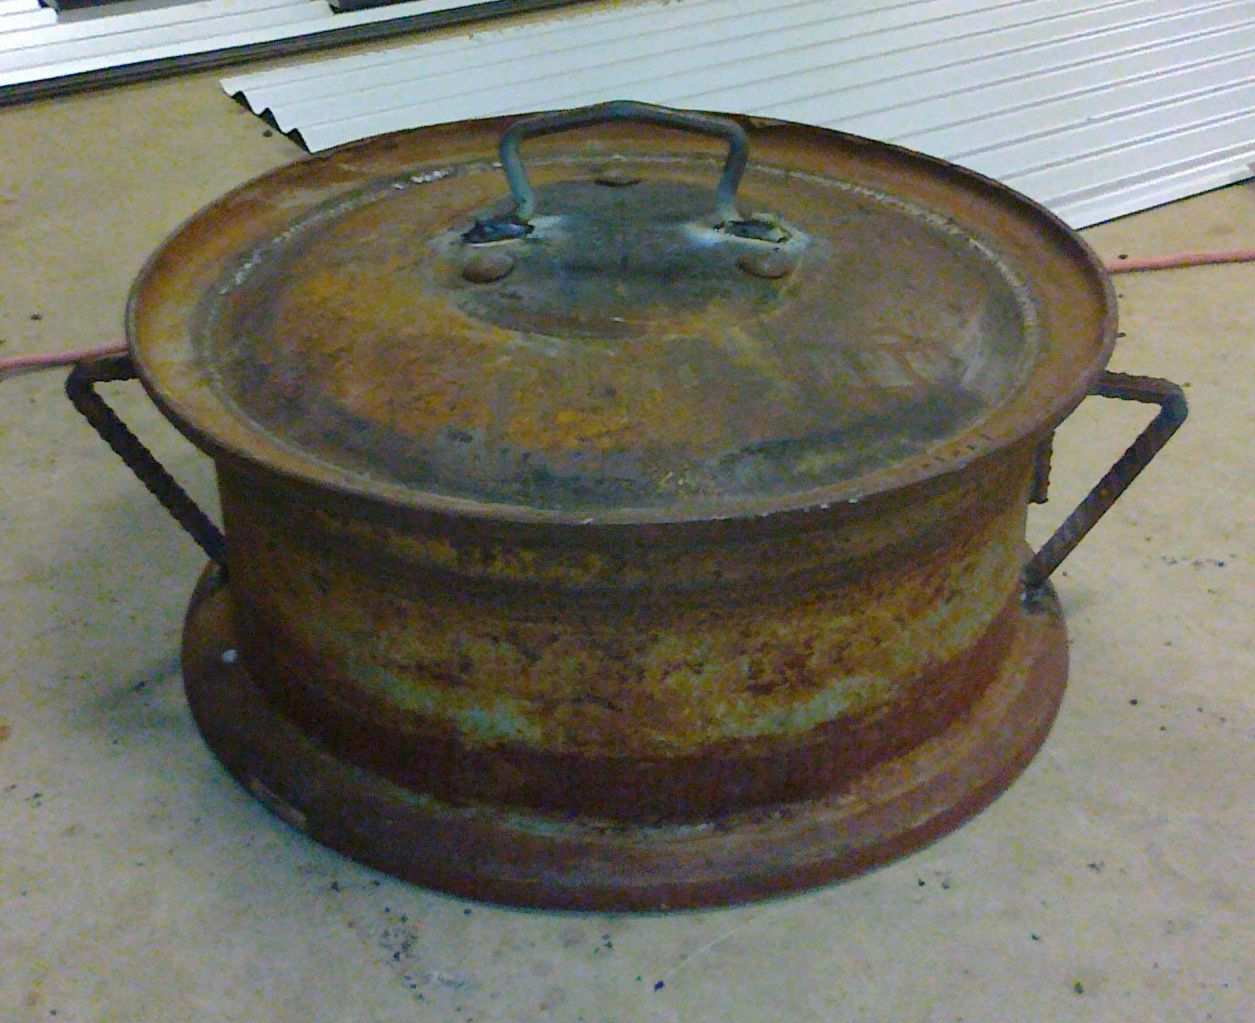 Camp oven cooking and camping in australia chat forums for Diy cooking stove